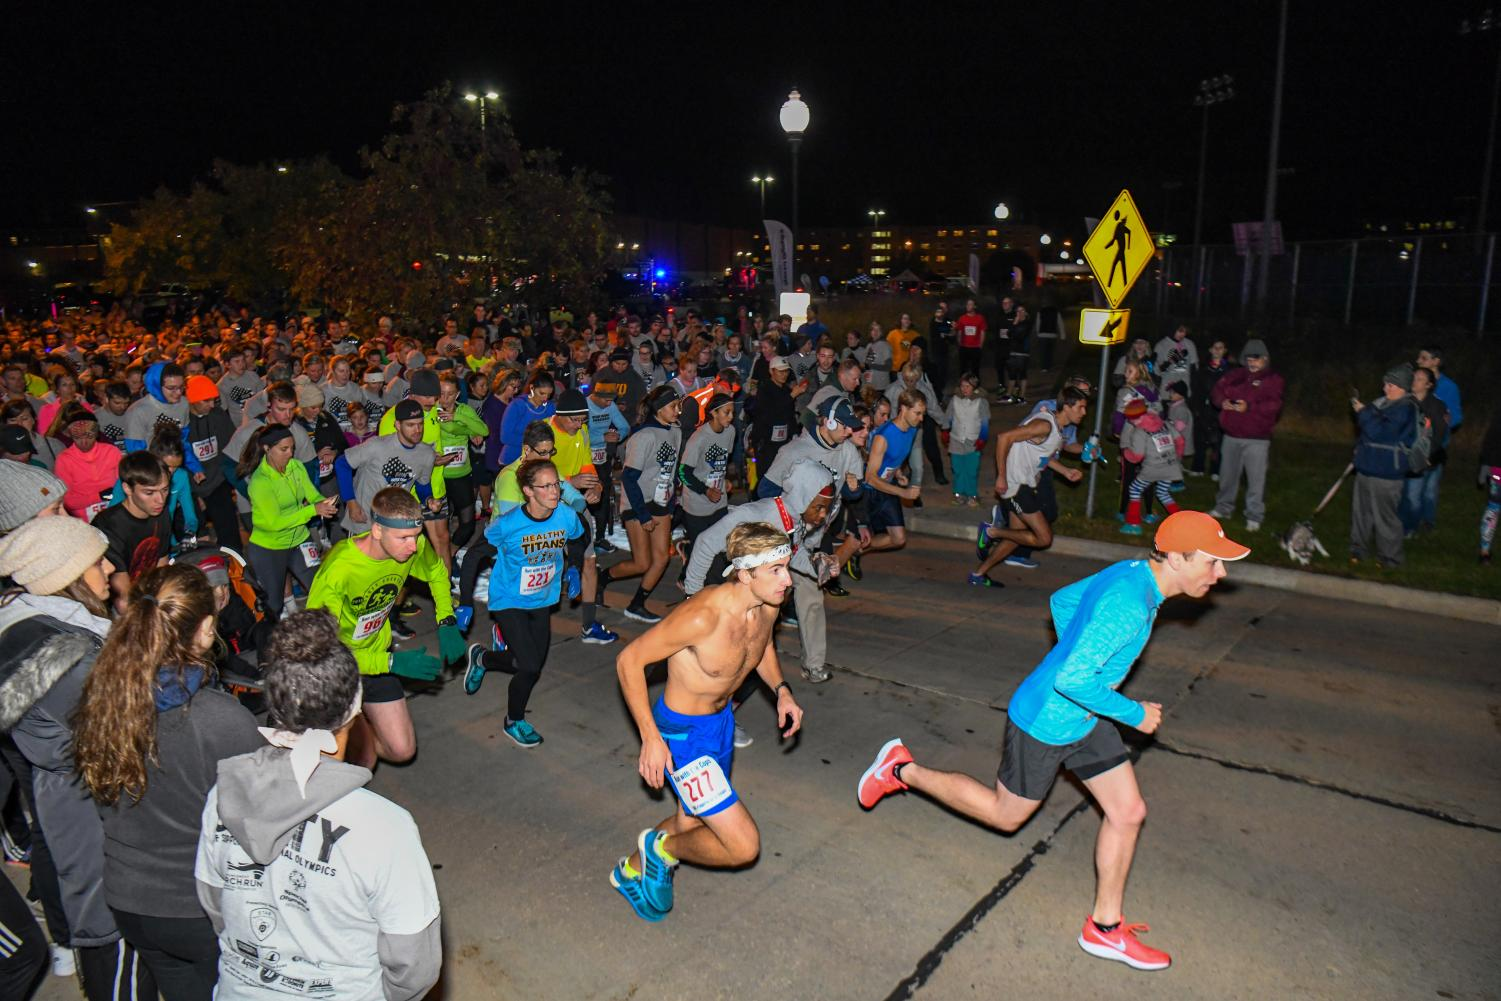 The annual Run With Cops 5K kicked off on Pearl Ave. at 7:30 p.m. on Friday, Oct. 5. on UWO campus.